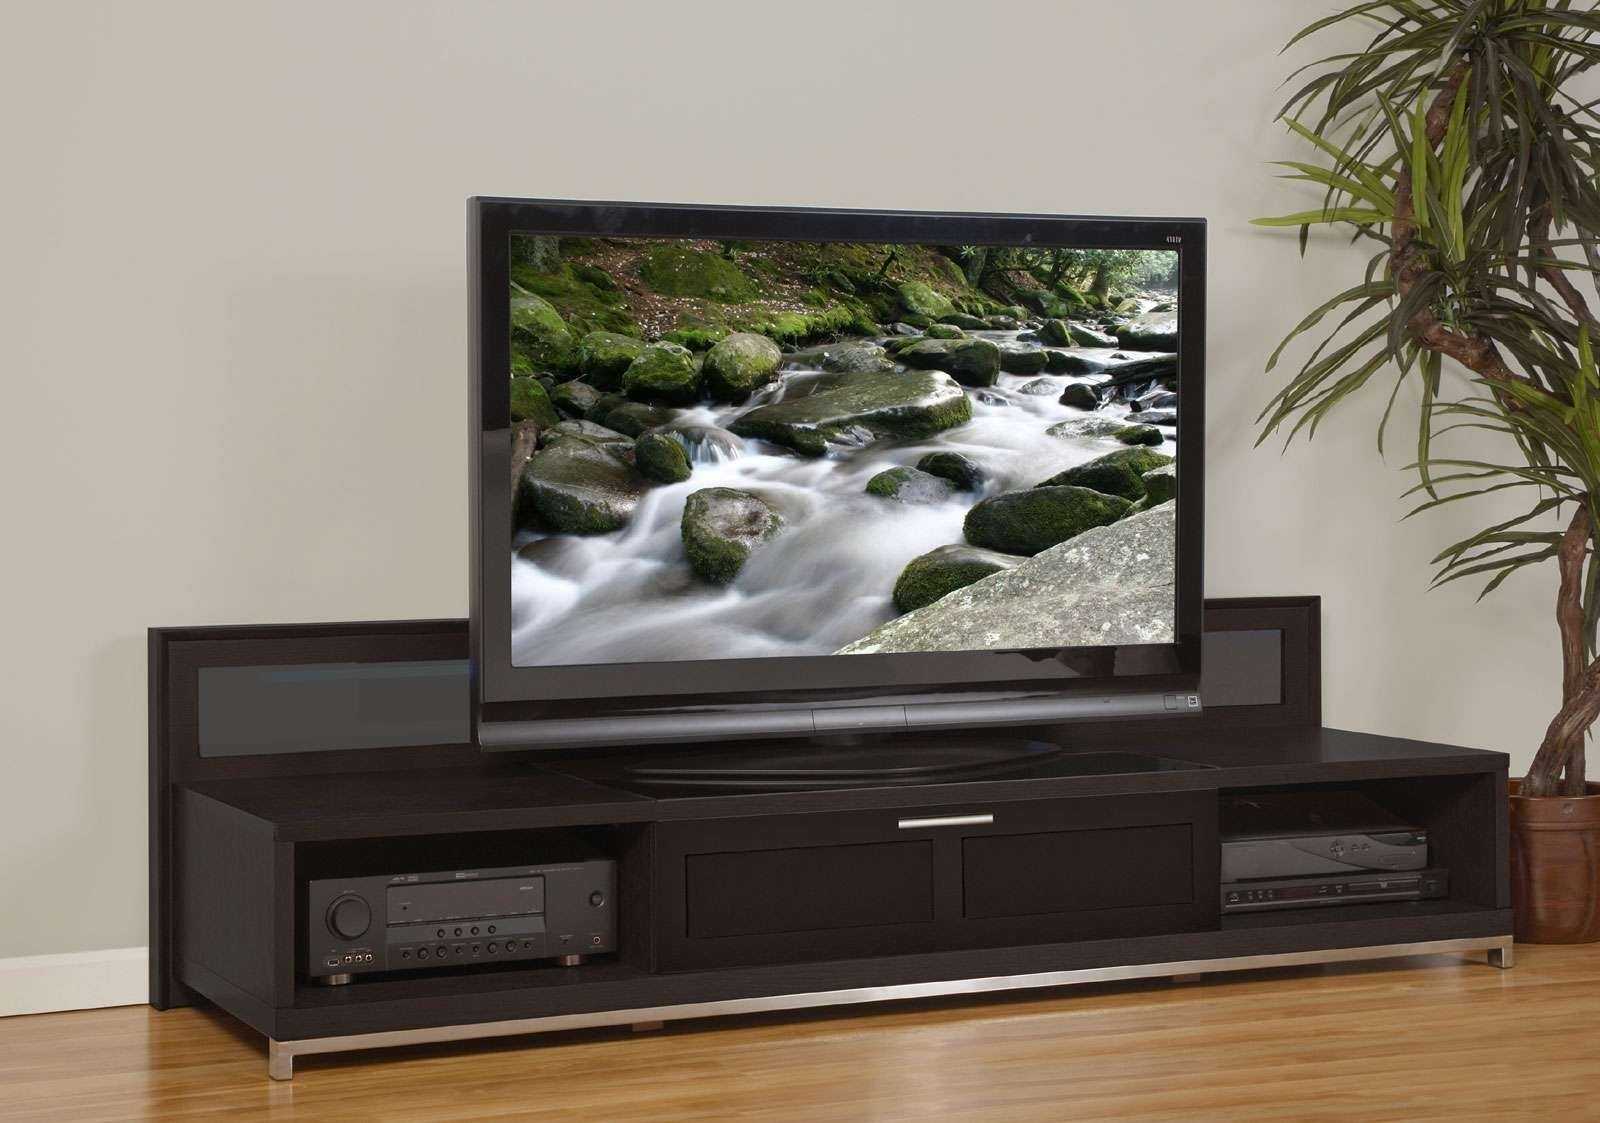 Fancy Tv Stands 60 Inch Flat Screens 52 For Your Home Improvement Regarding Modern 60 Inch Tv Stands (View 7 of 20)